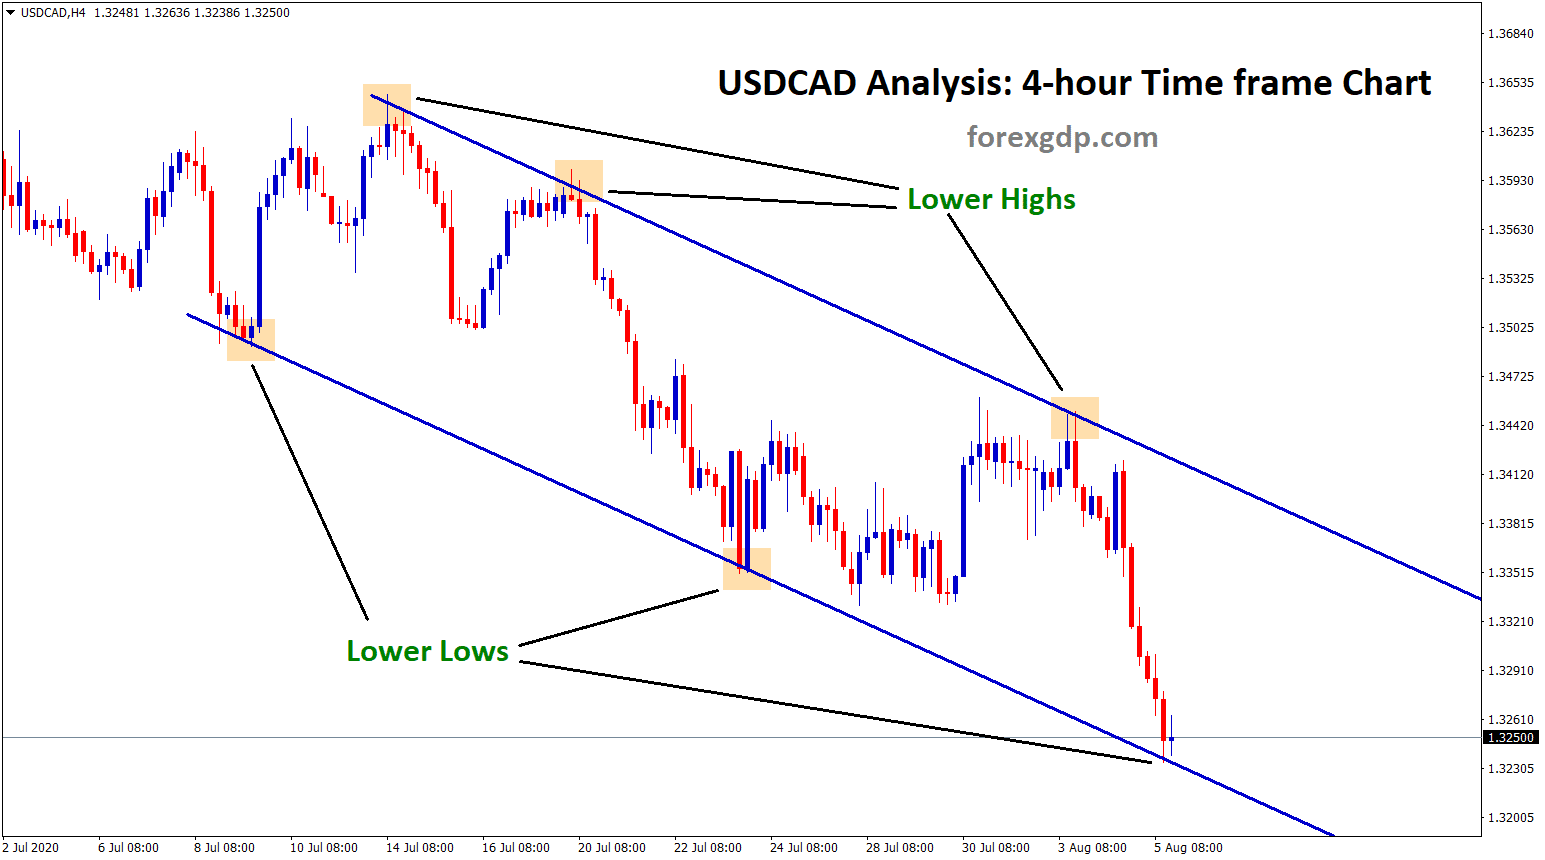 USDCAD reach lower low in h4 tf